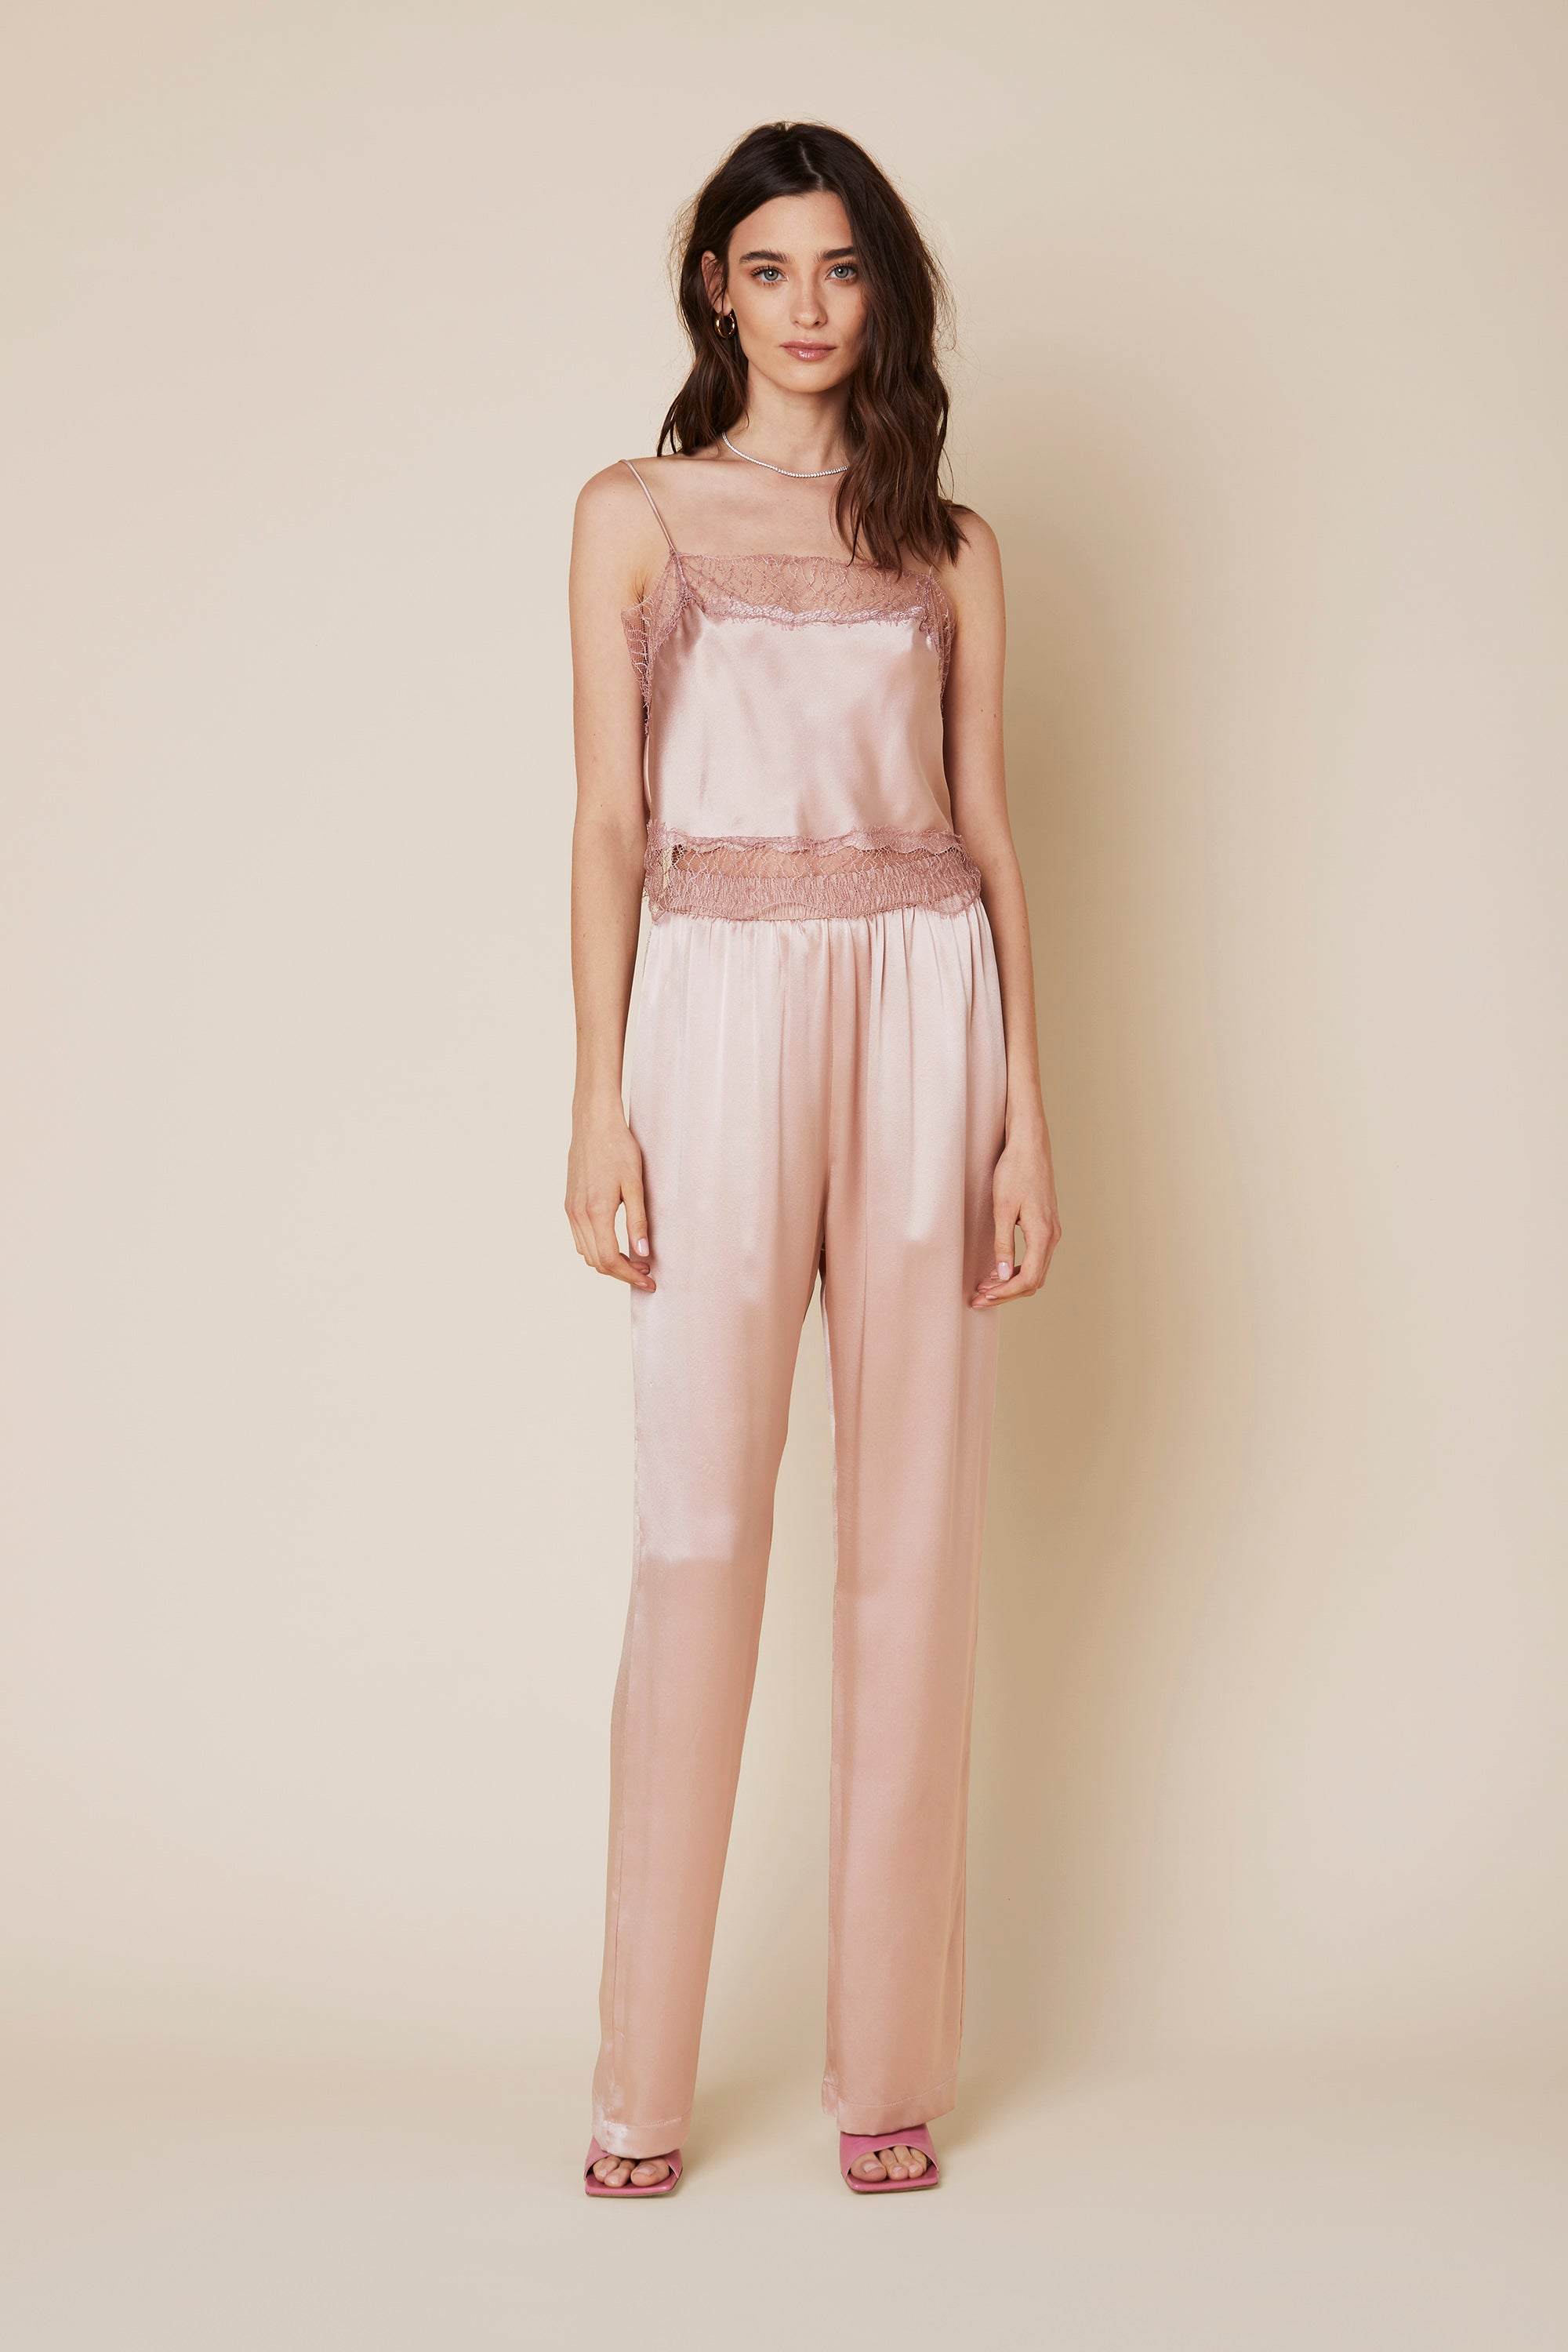 PENELOPE SILK PANT | CHERRY BLOSSOM - Final Sale